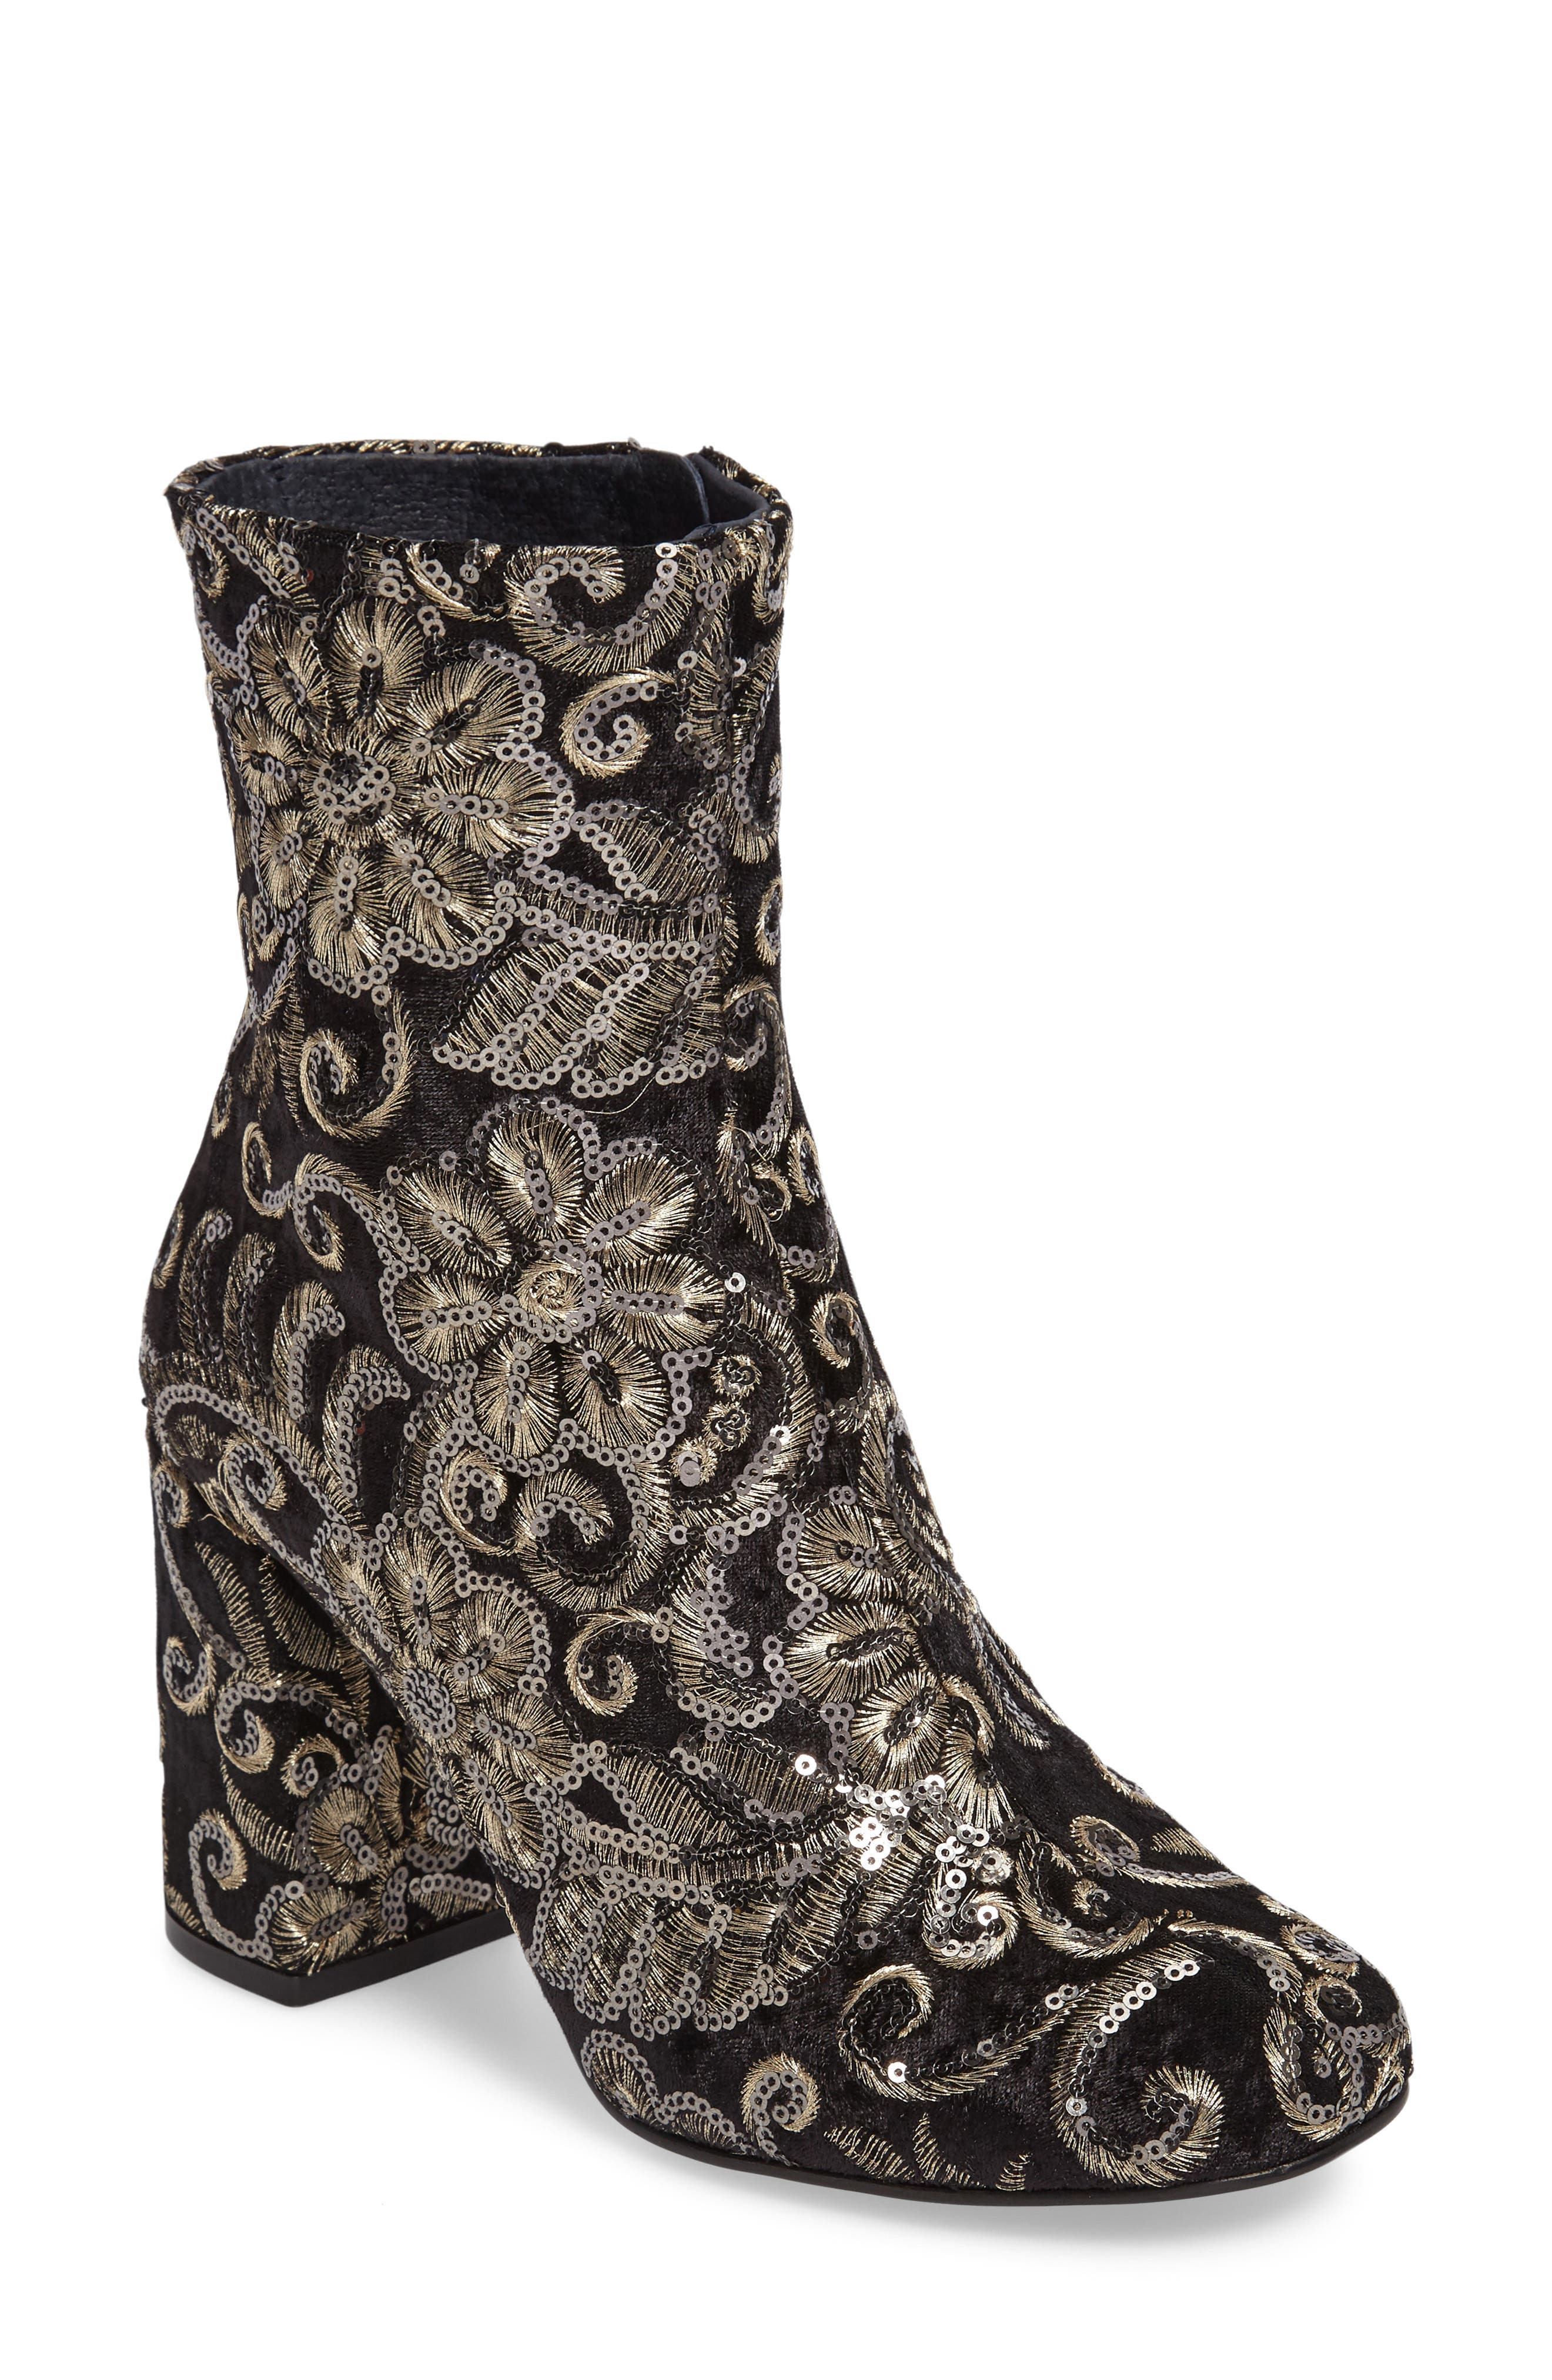 Alternate Image 1 Selected - Topshop Merlot Embroidered Bootie (Women)